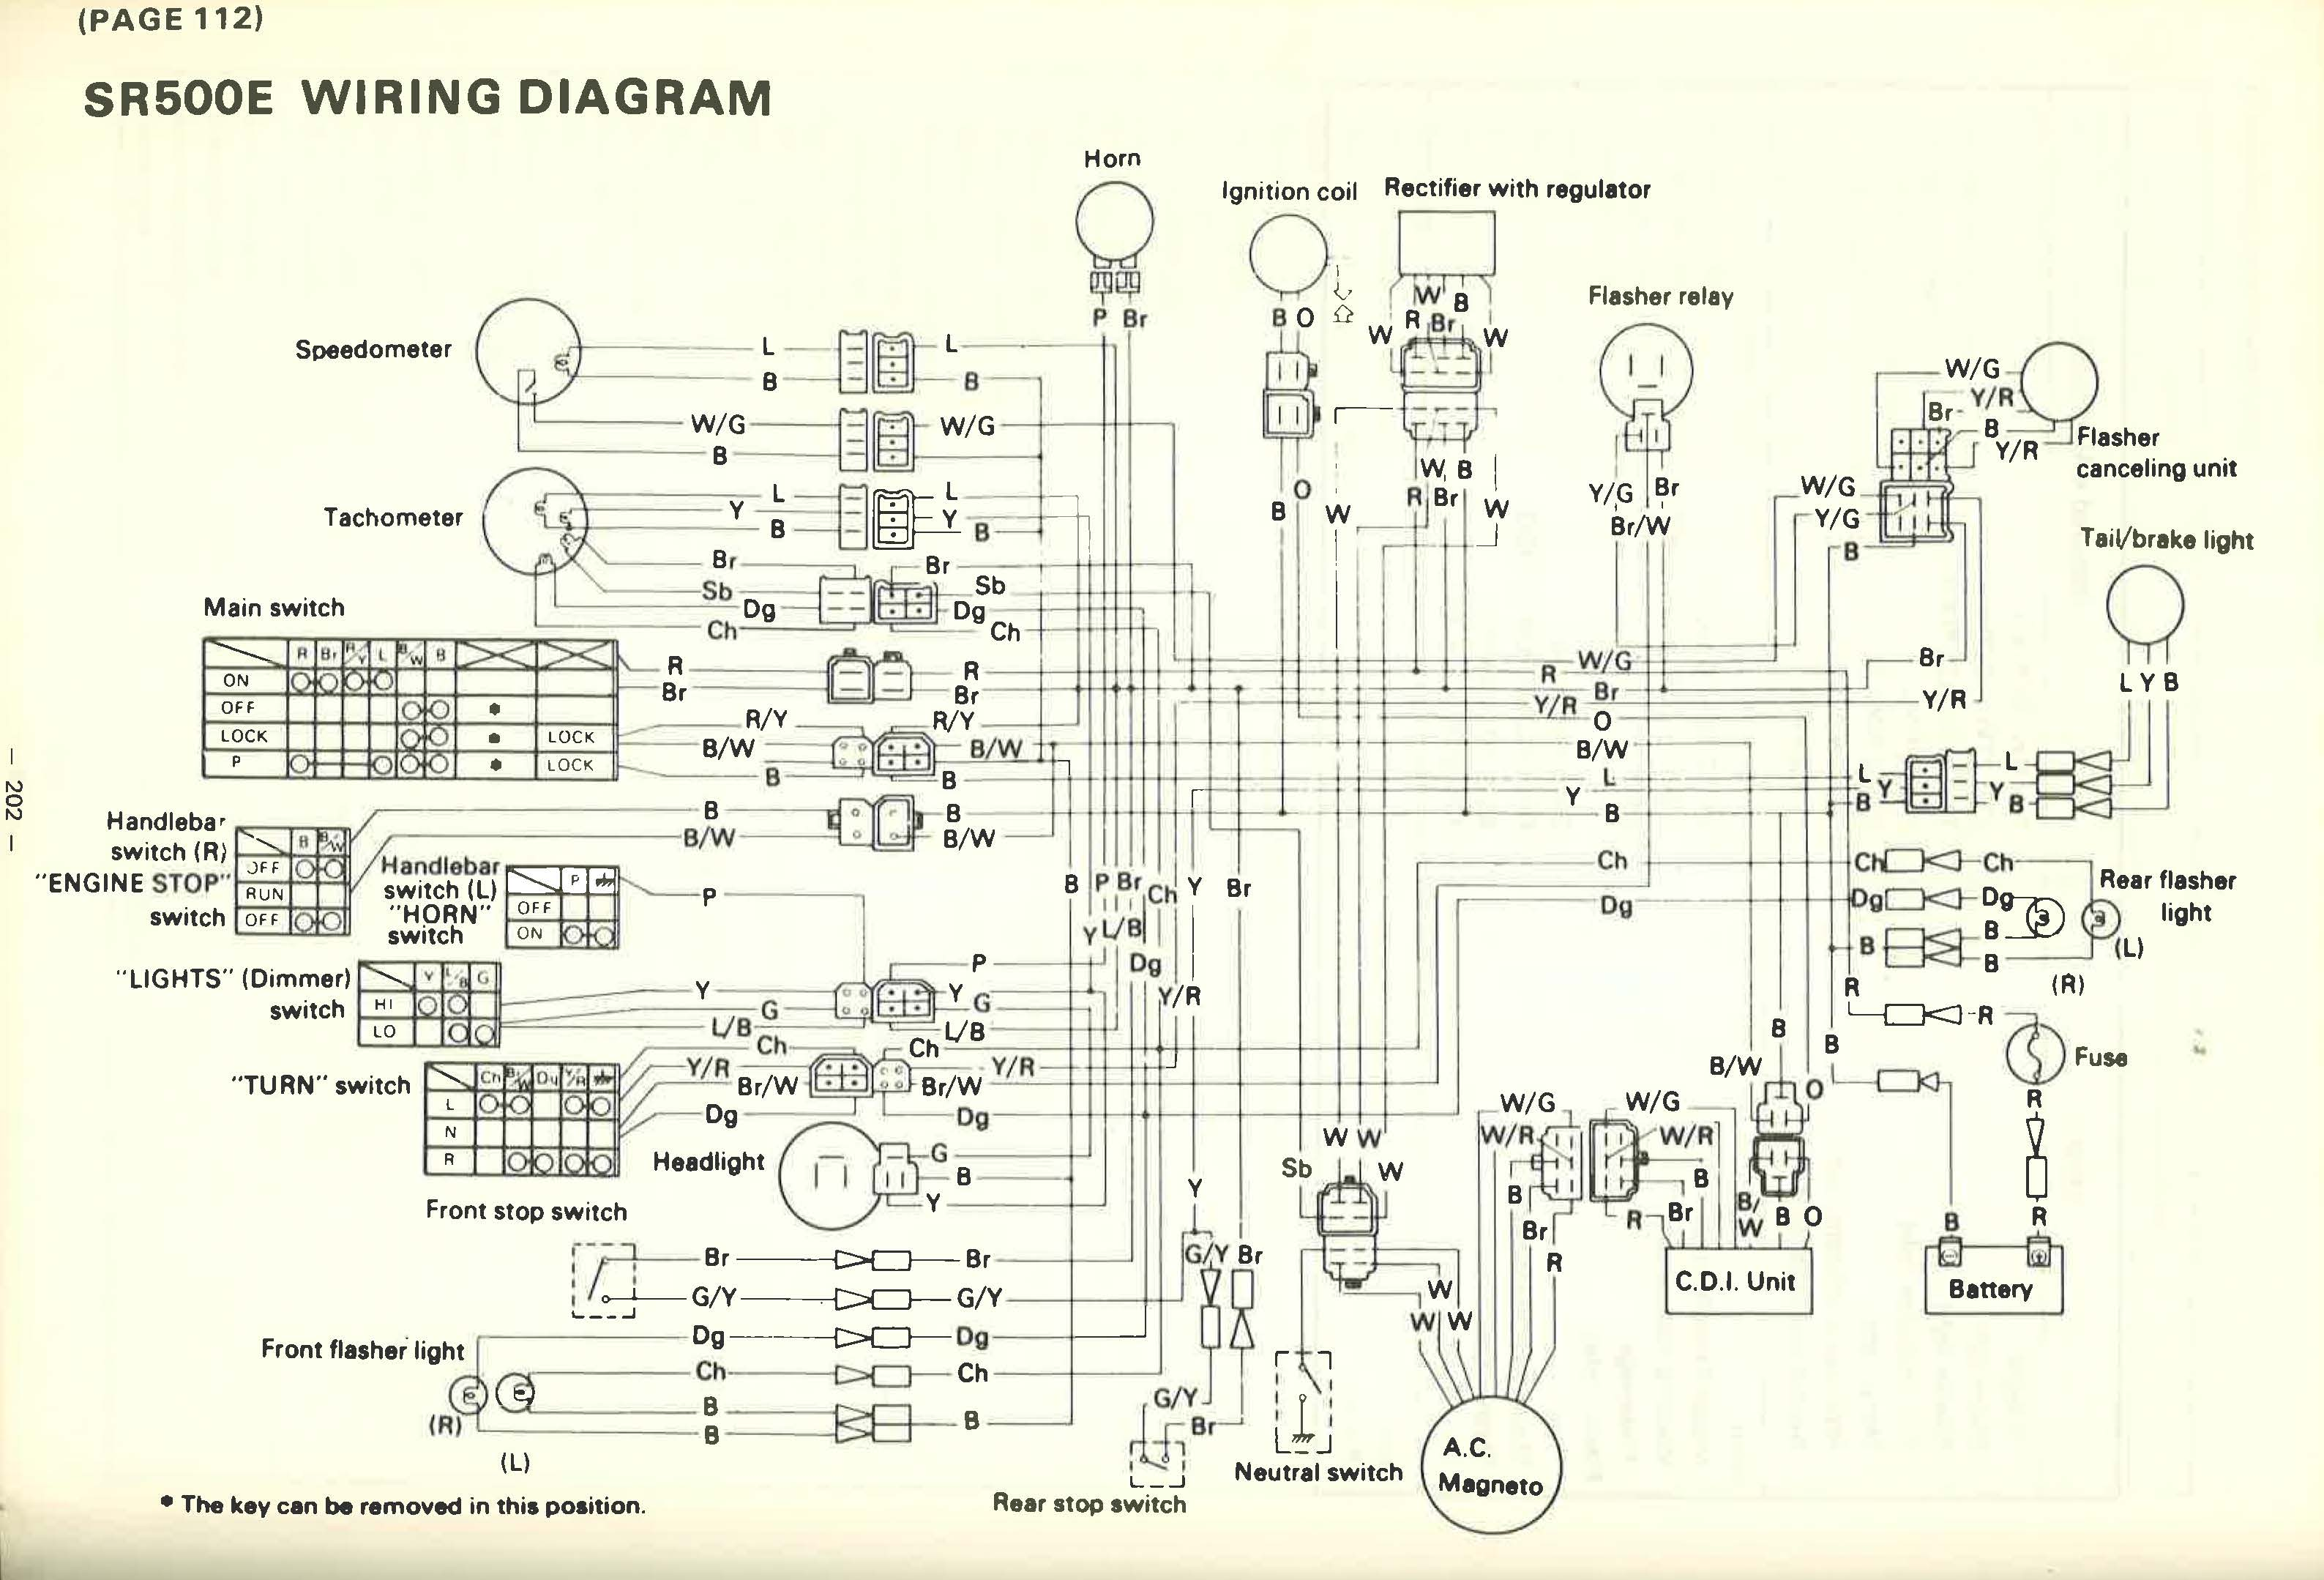 1965 yamaha wiring diagram yamaha sr500e wiring diagram 1965 ford wiring diagram